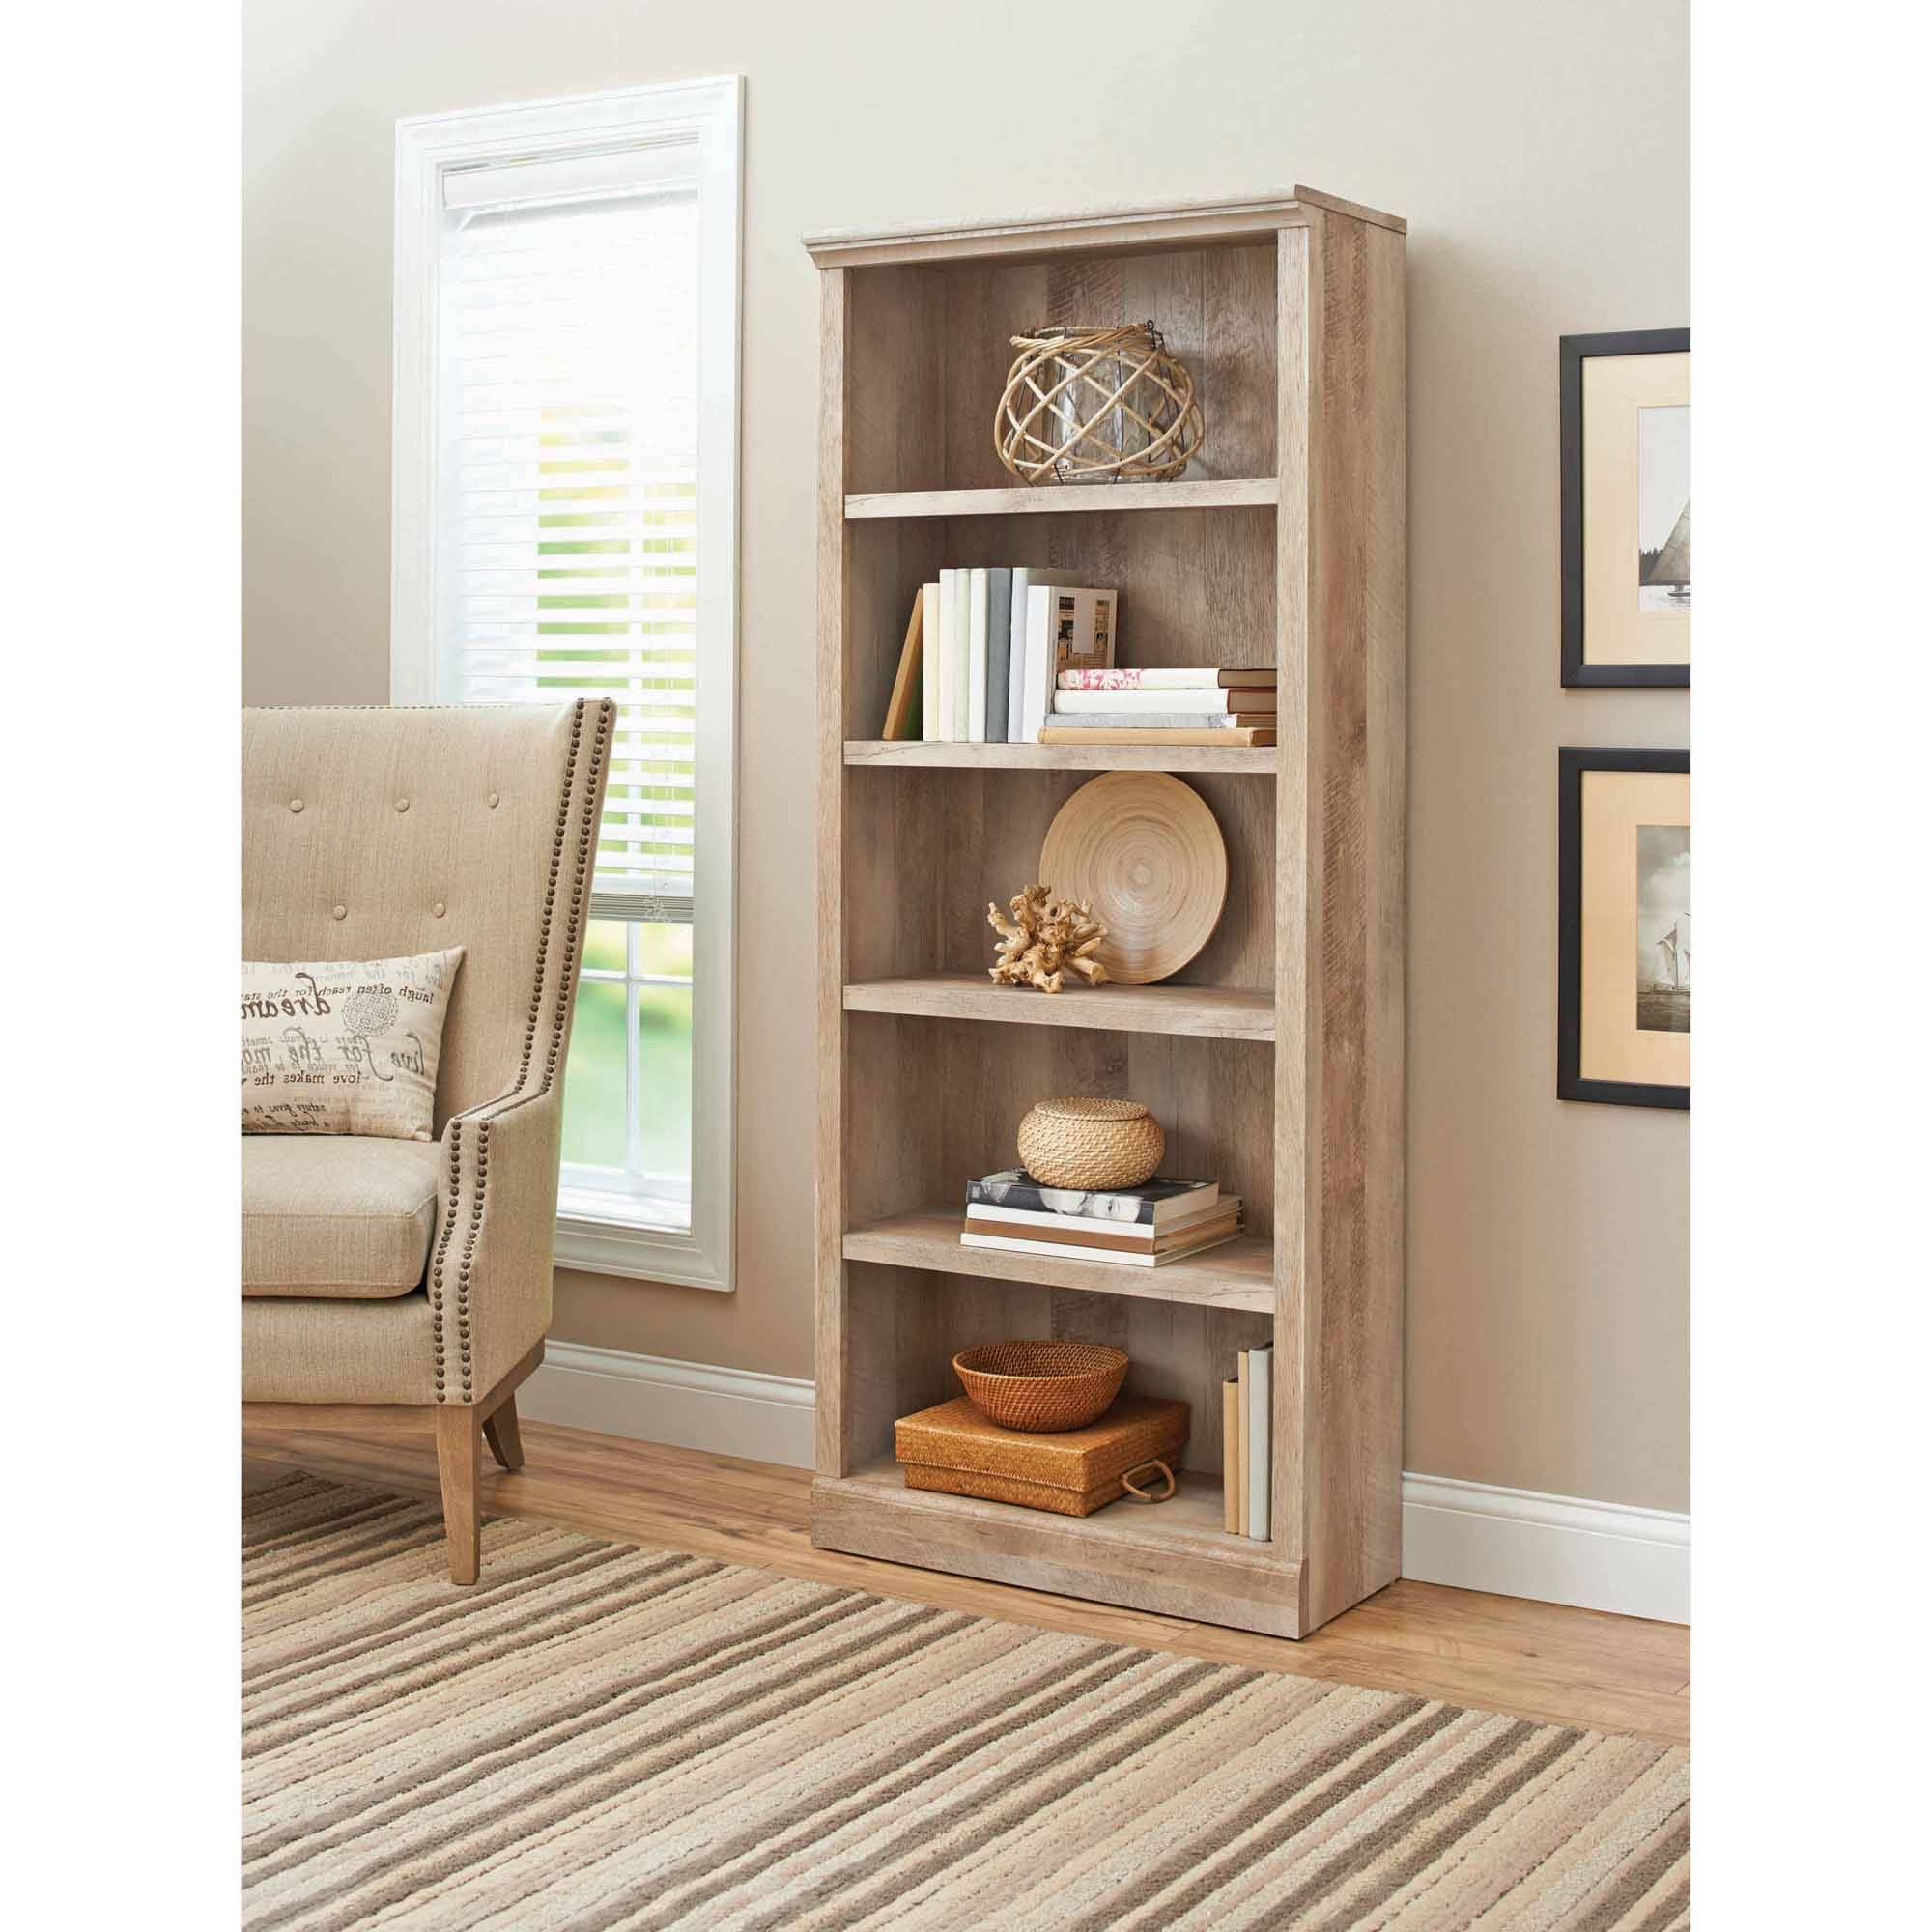 Black Bookcases Walmart For Recent Better Homes And Gardens Crossmill 5 Shelf Bookcase, Multiple (View 5 of 15)